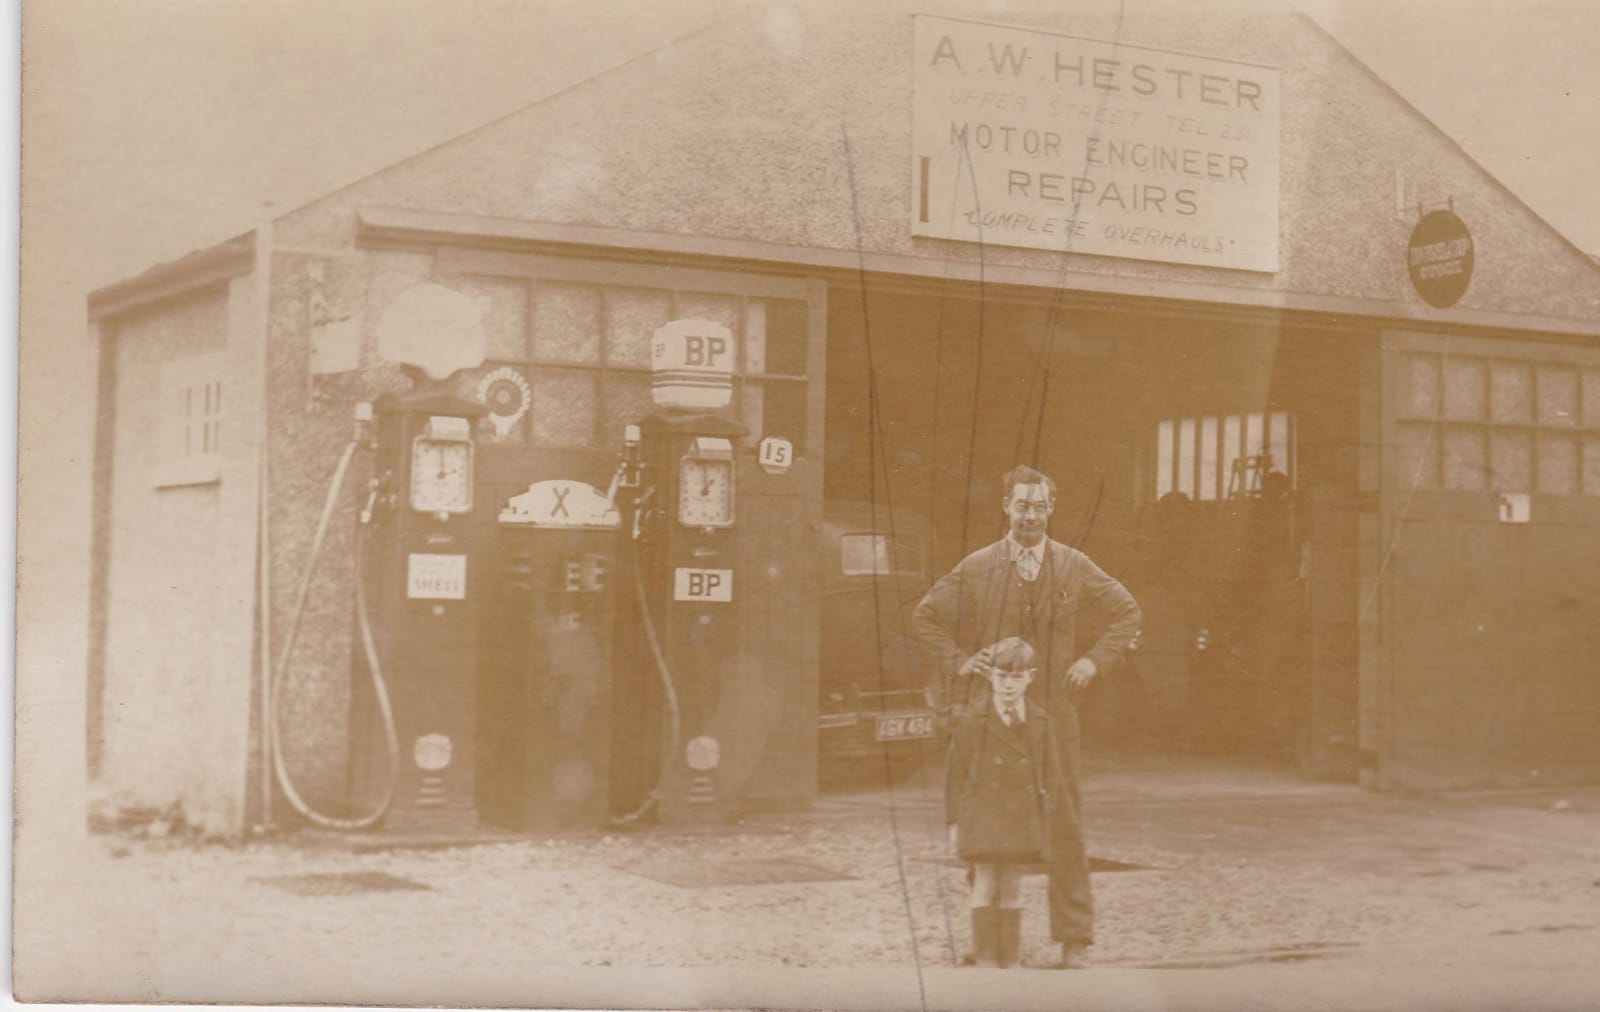 hesters garage fleet hampshire